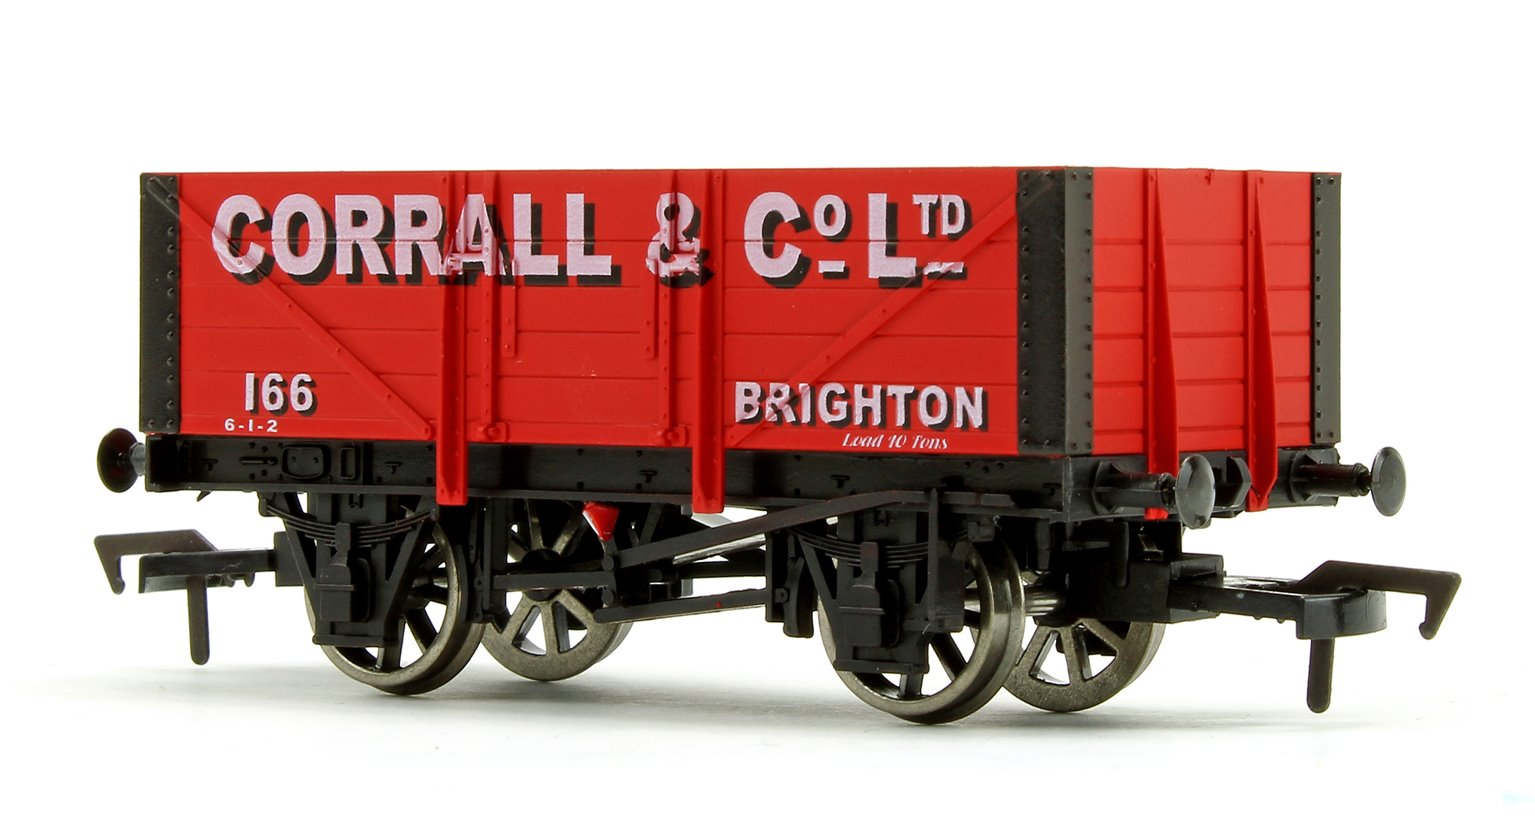 5 Plank Wagon Corrall & Co Ltd 166 Brighton